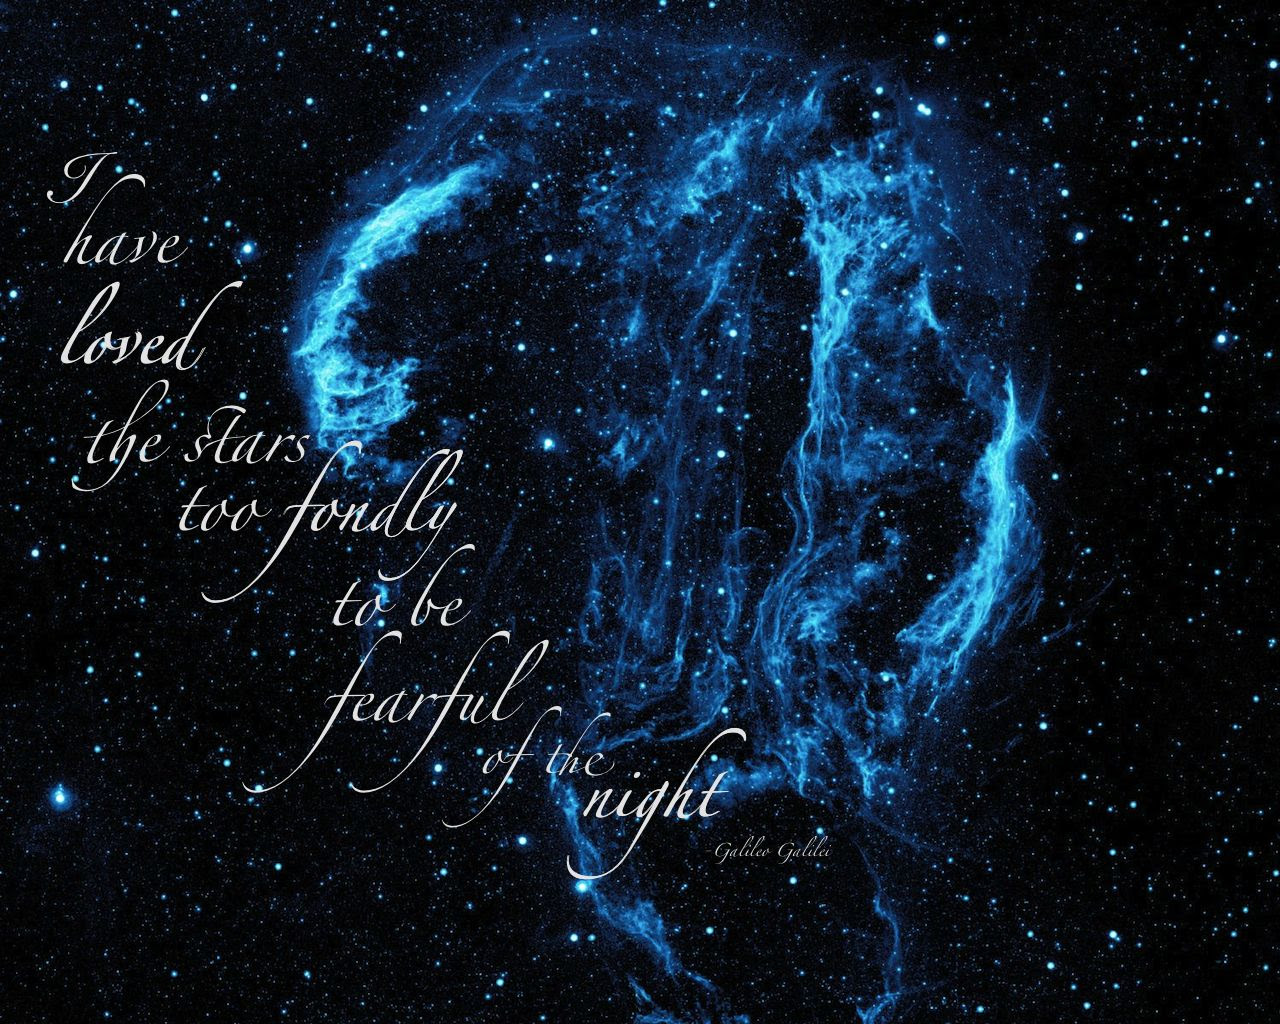 I Have Loved The Stars Galileo Galilei Live By Quotes